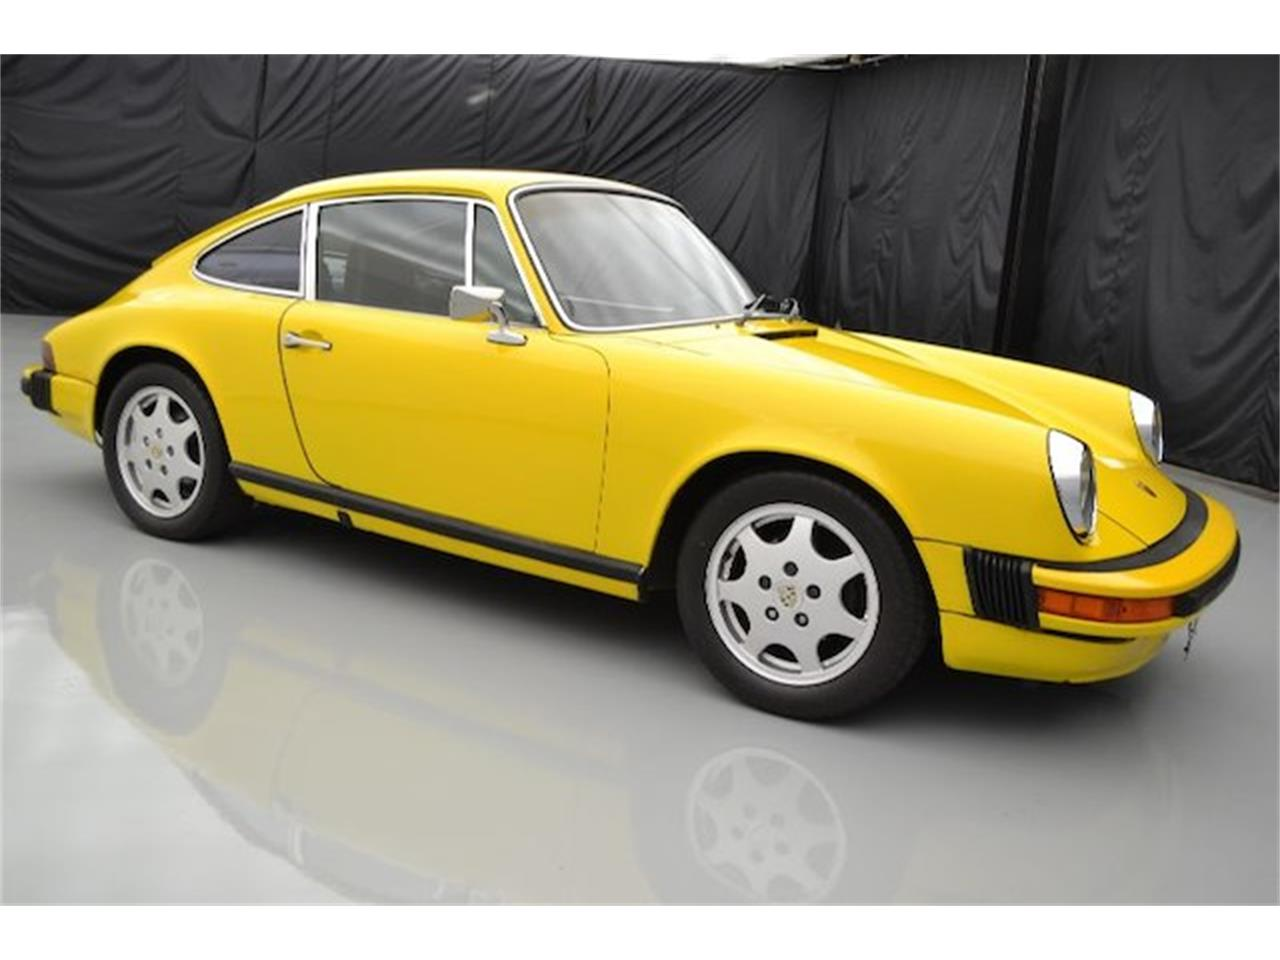 Large Picture of 1976 Porsche 912 located in Hickory North Carolina - $26,500.00 - OM20